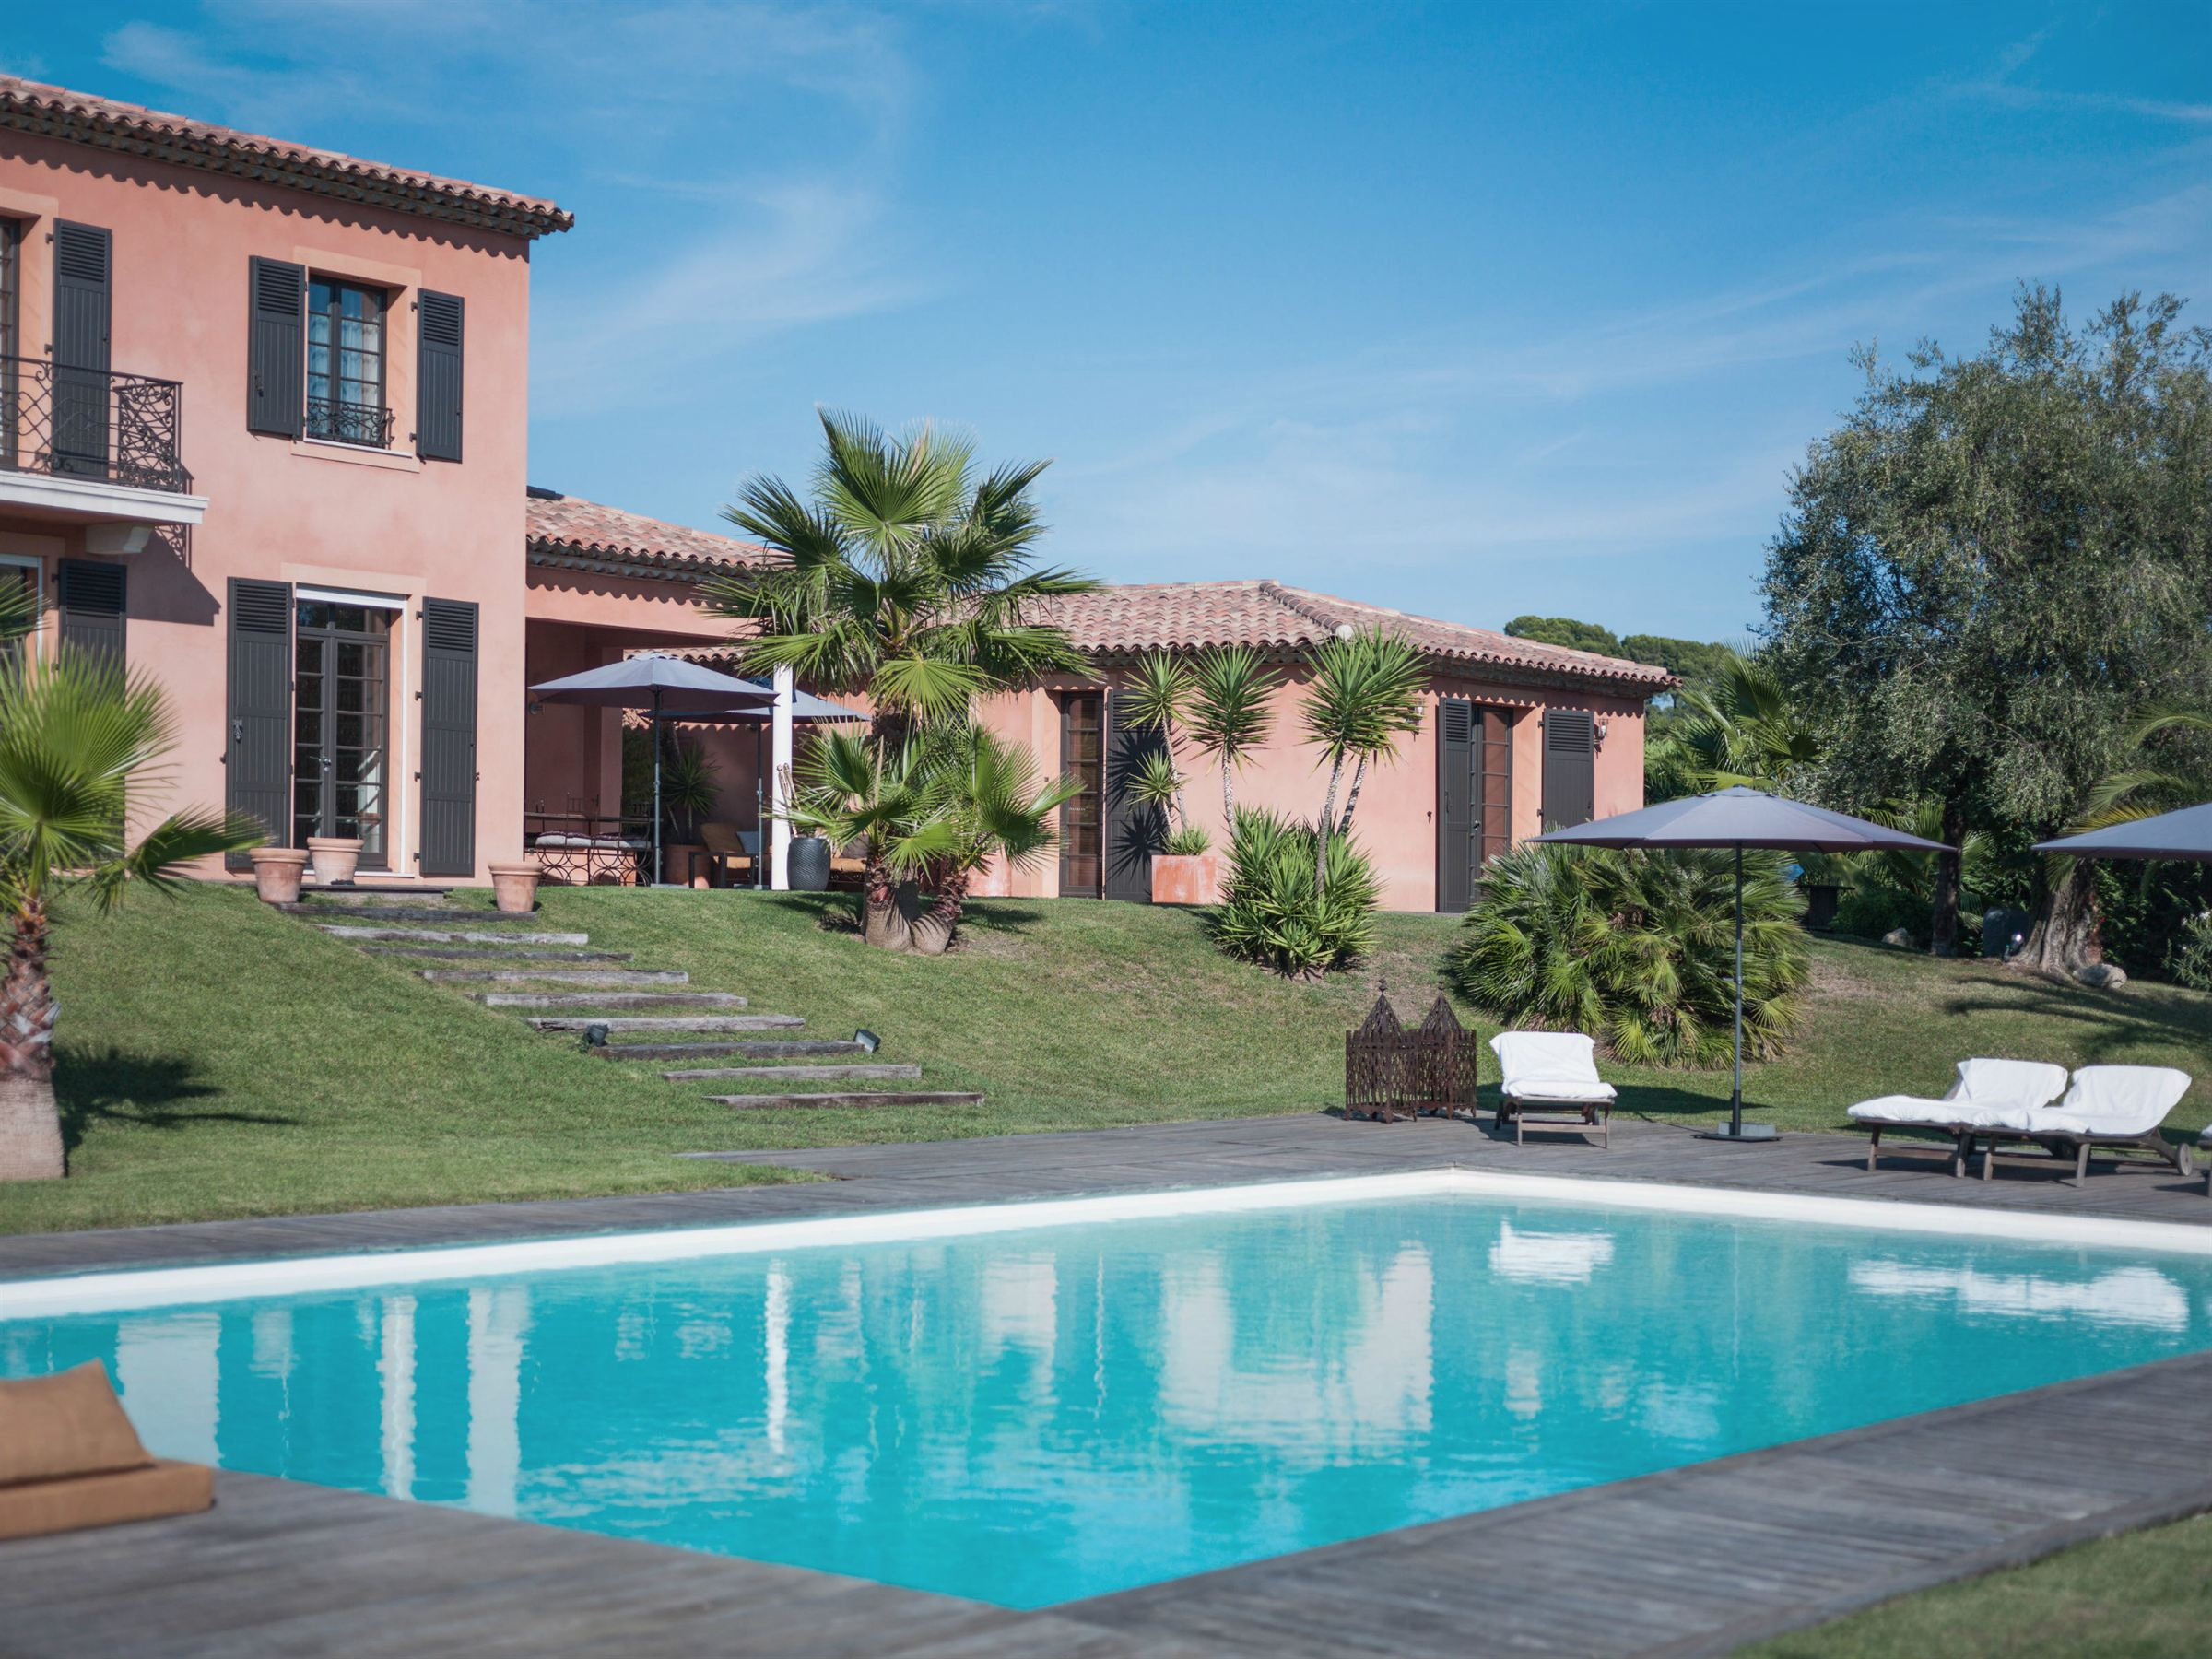 Single Family Home for Sale at Beautiful Family Home Mougins, Provence-Alpes-Cote D'Azur, 06250 France